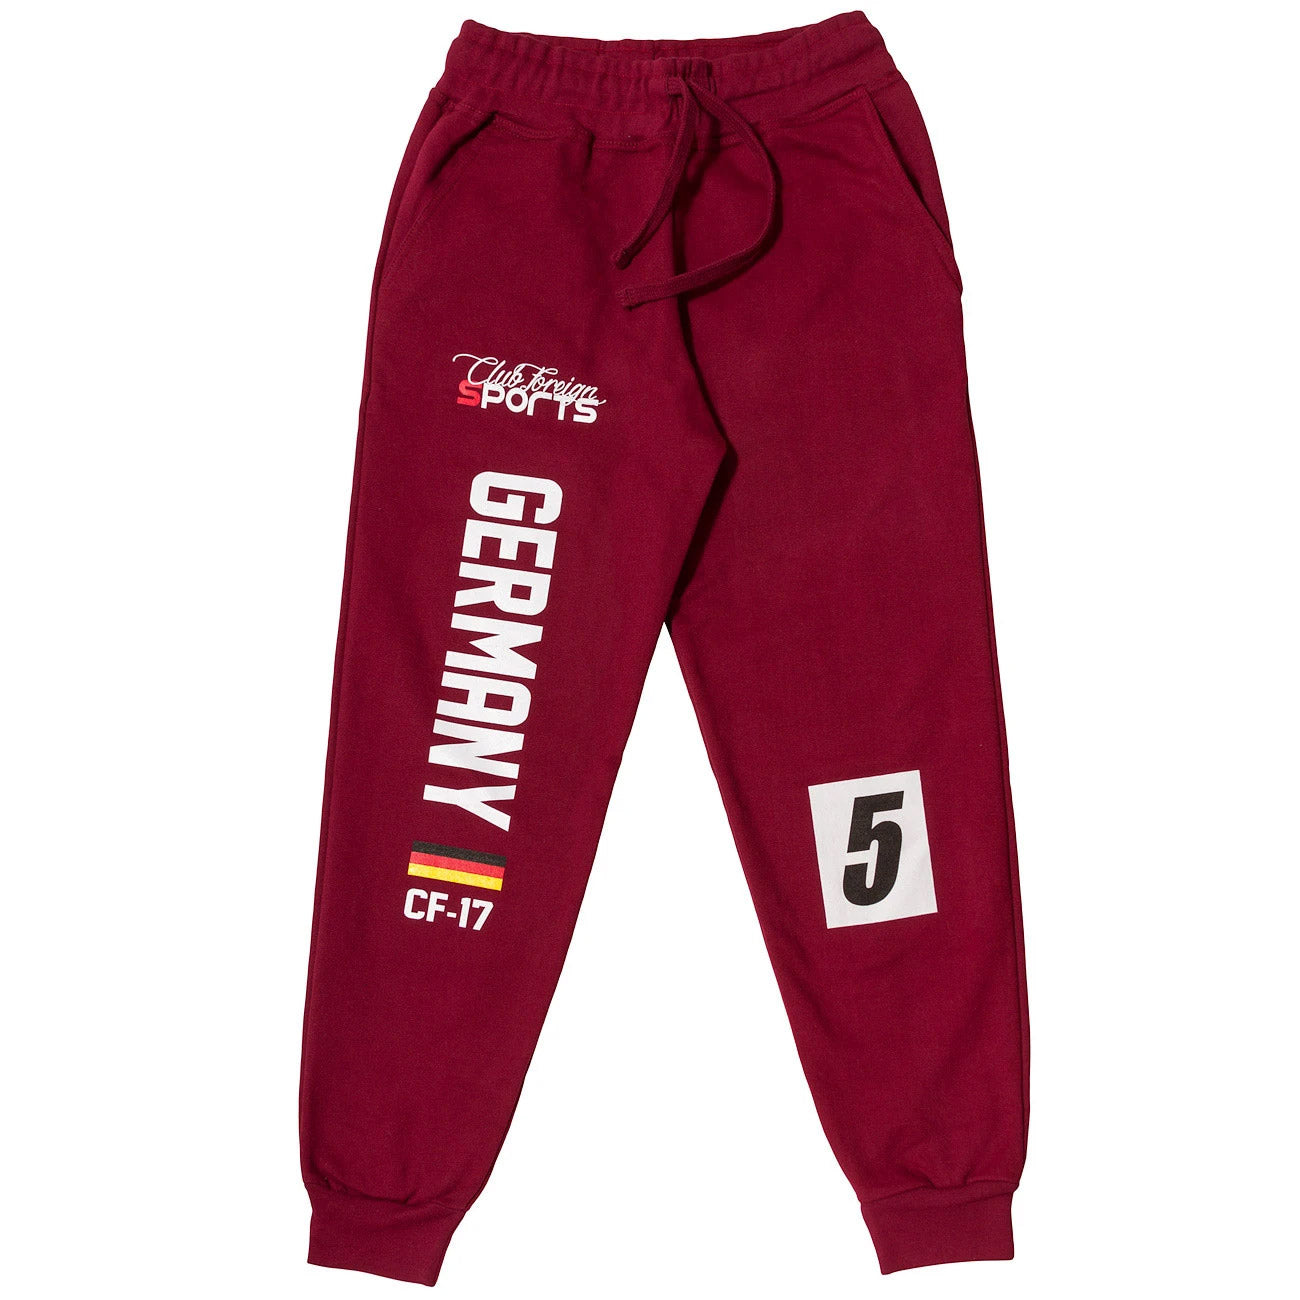 ClubForeign Sports Germany Series Pants Burgundy - Trends Society